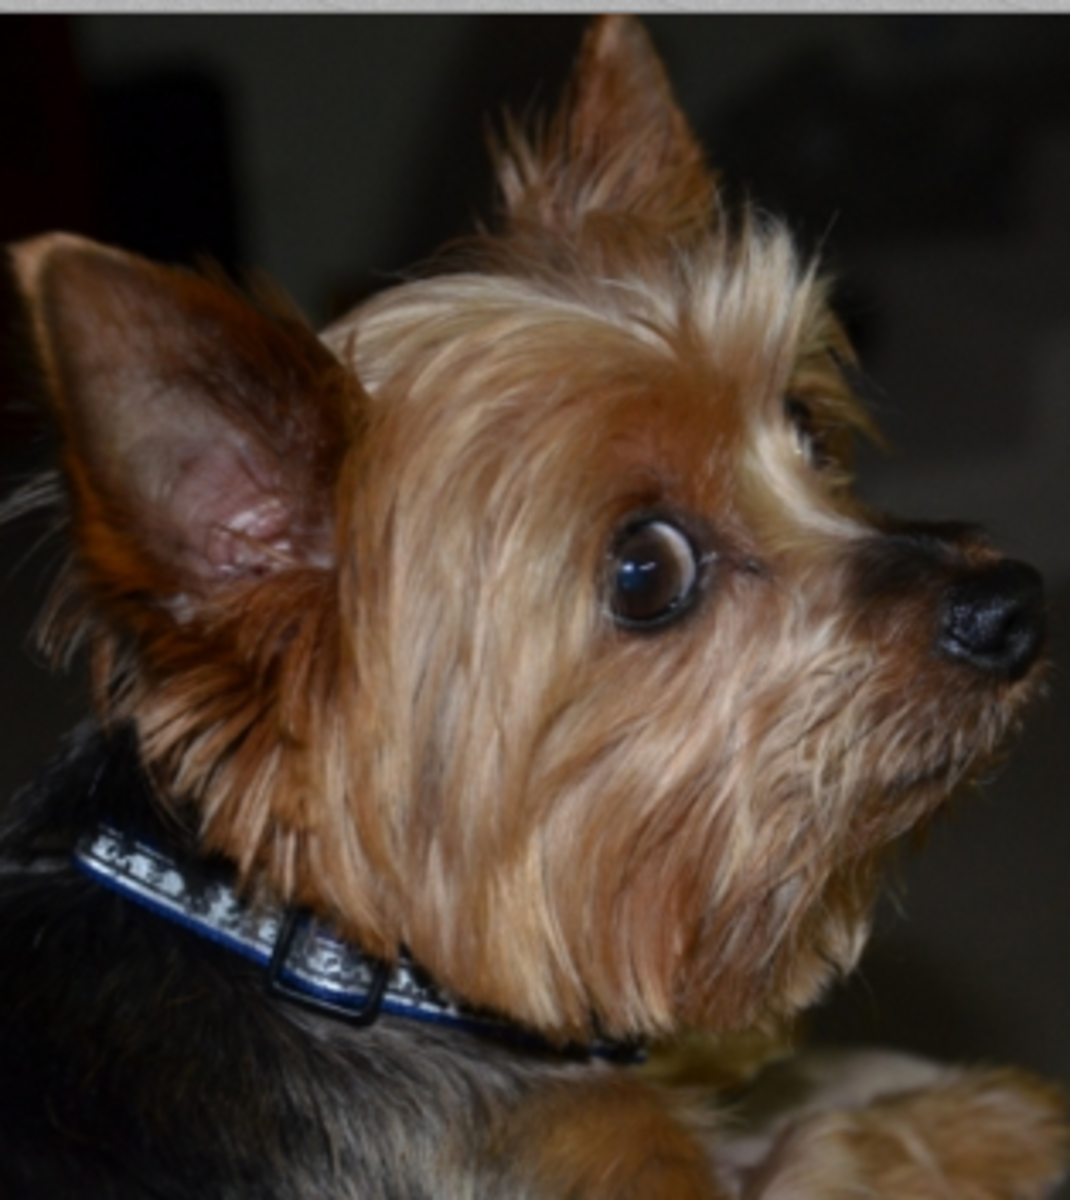 Many dogs show whale eyes when photographed.